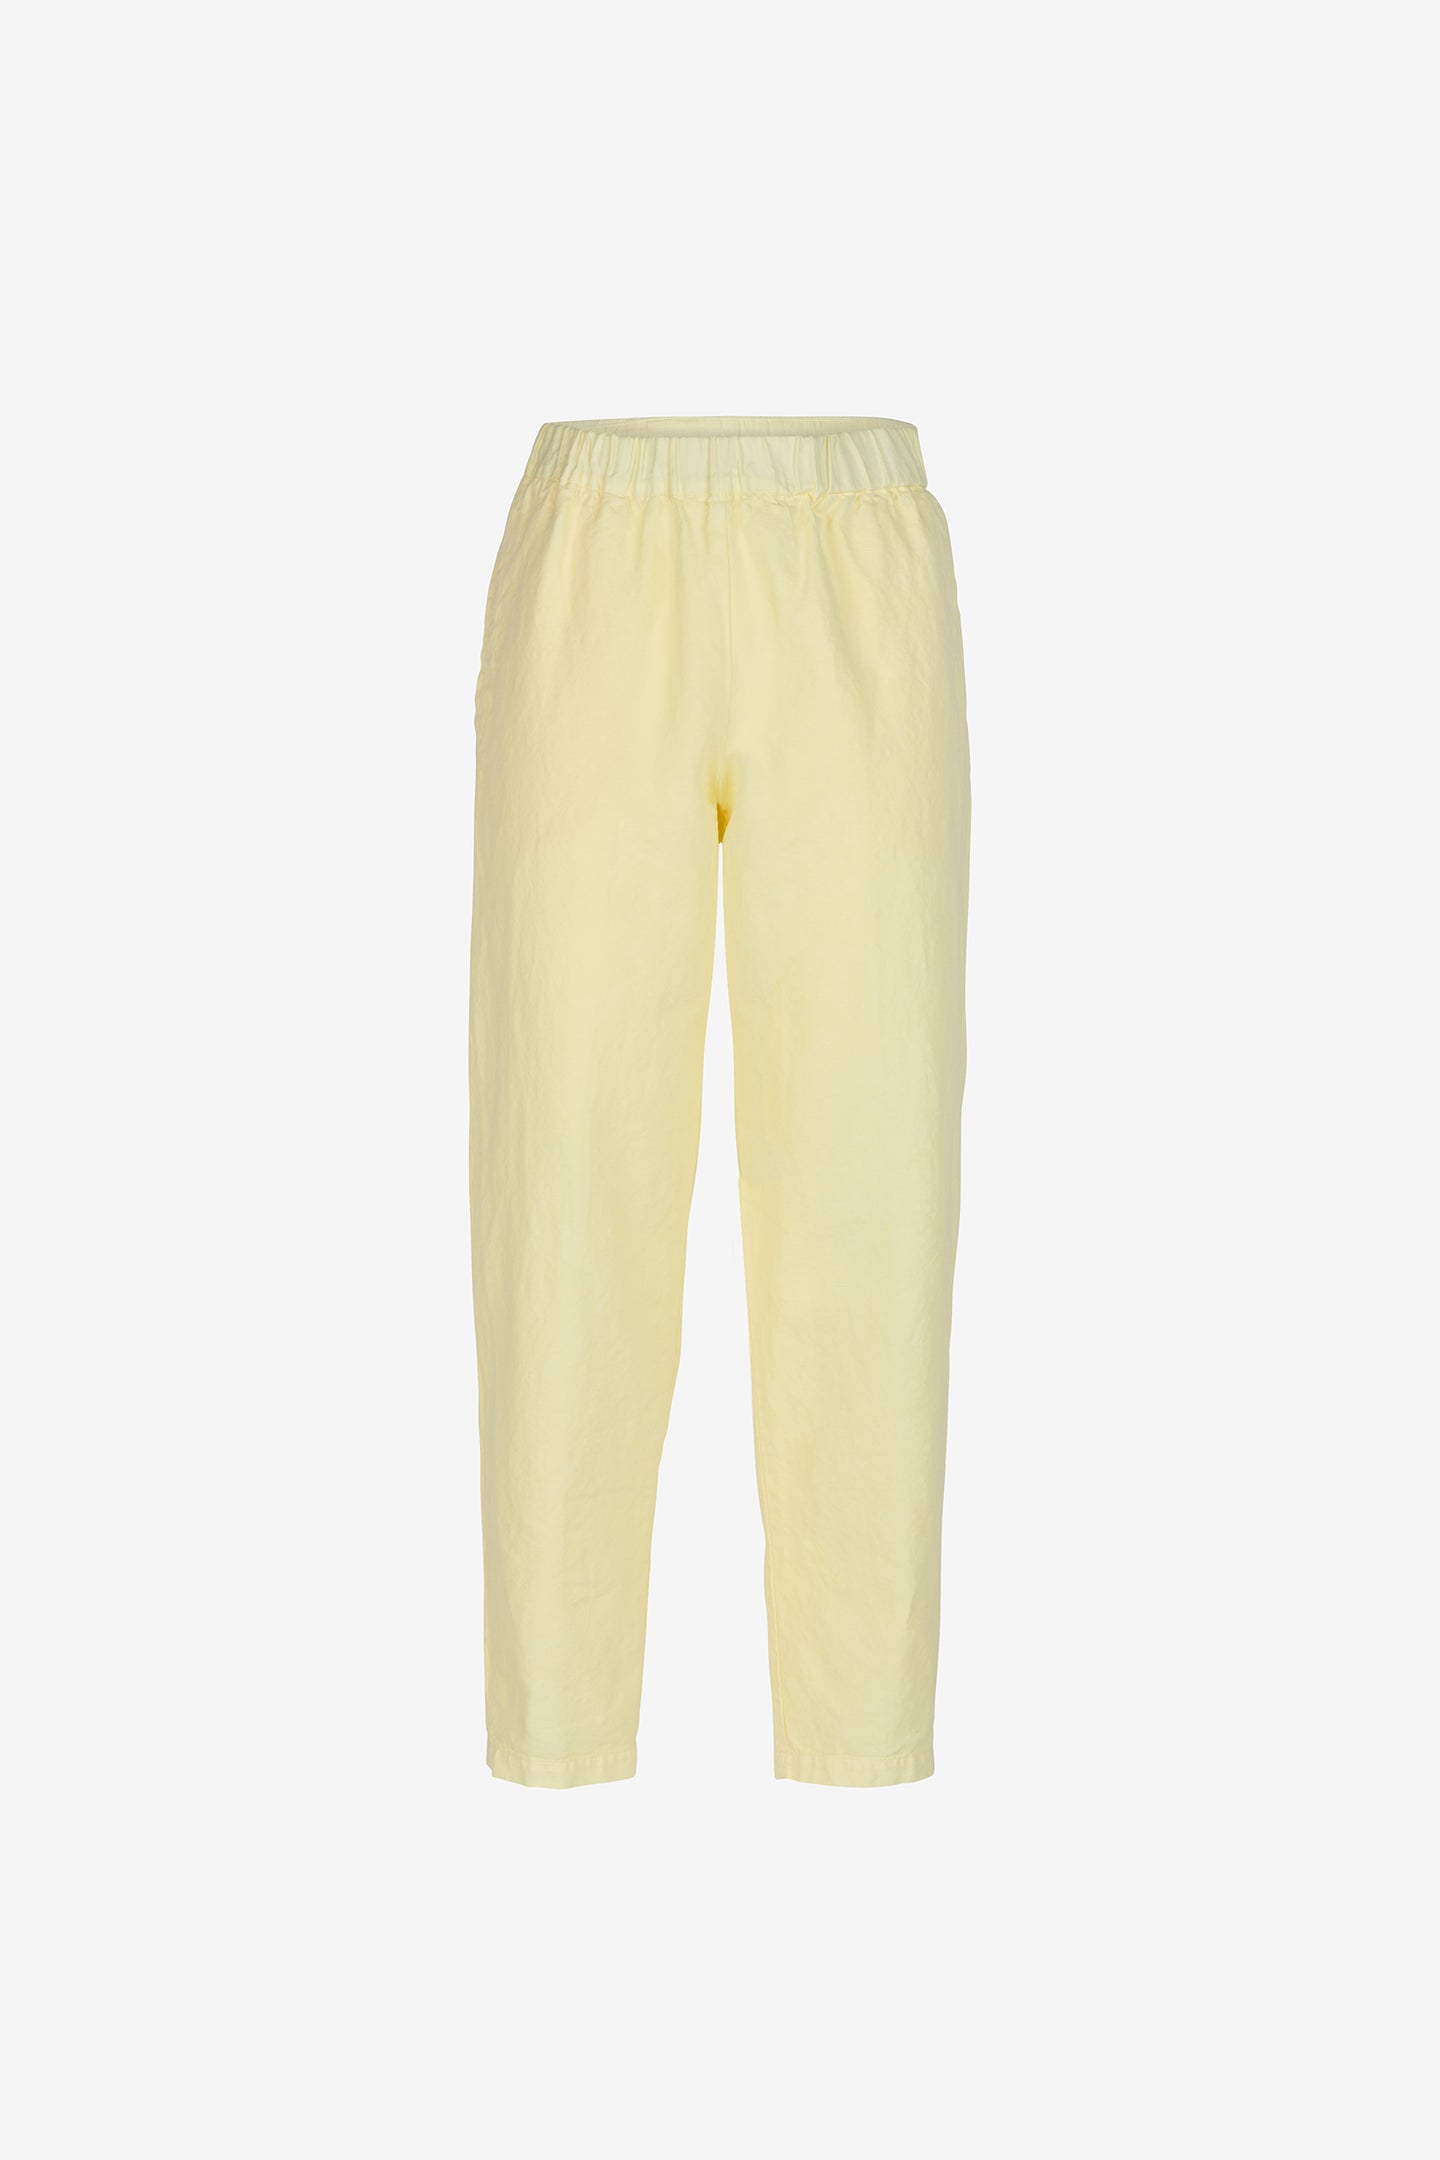 Pomandere - 7157-10547 - trouser - 30 egg yellow